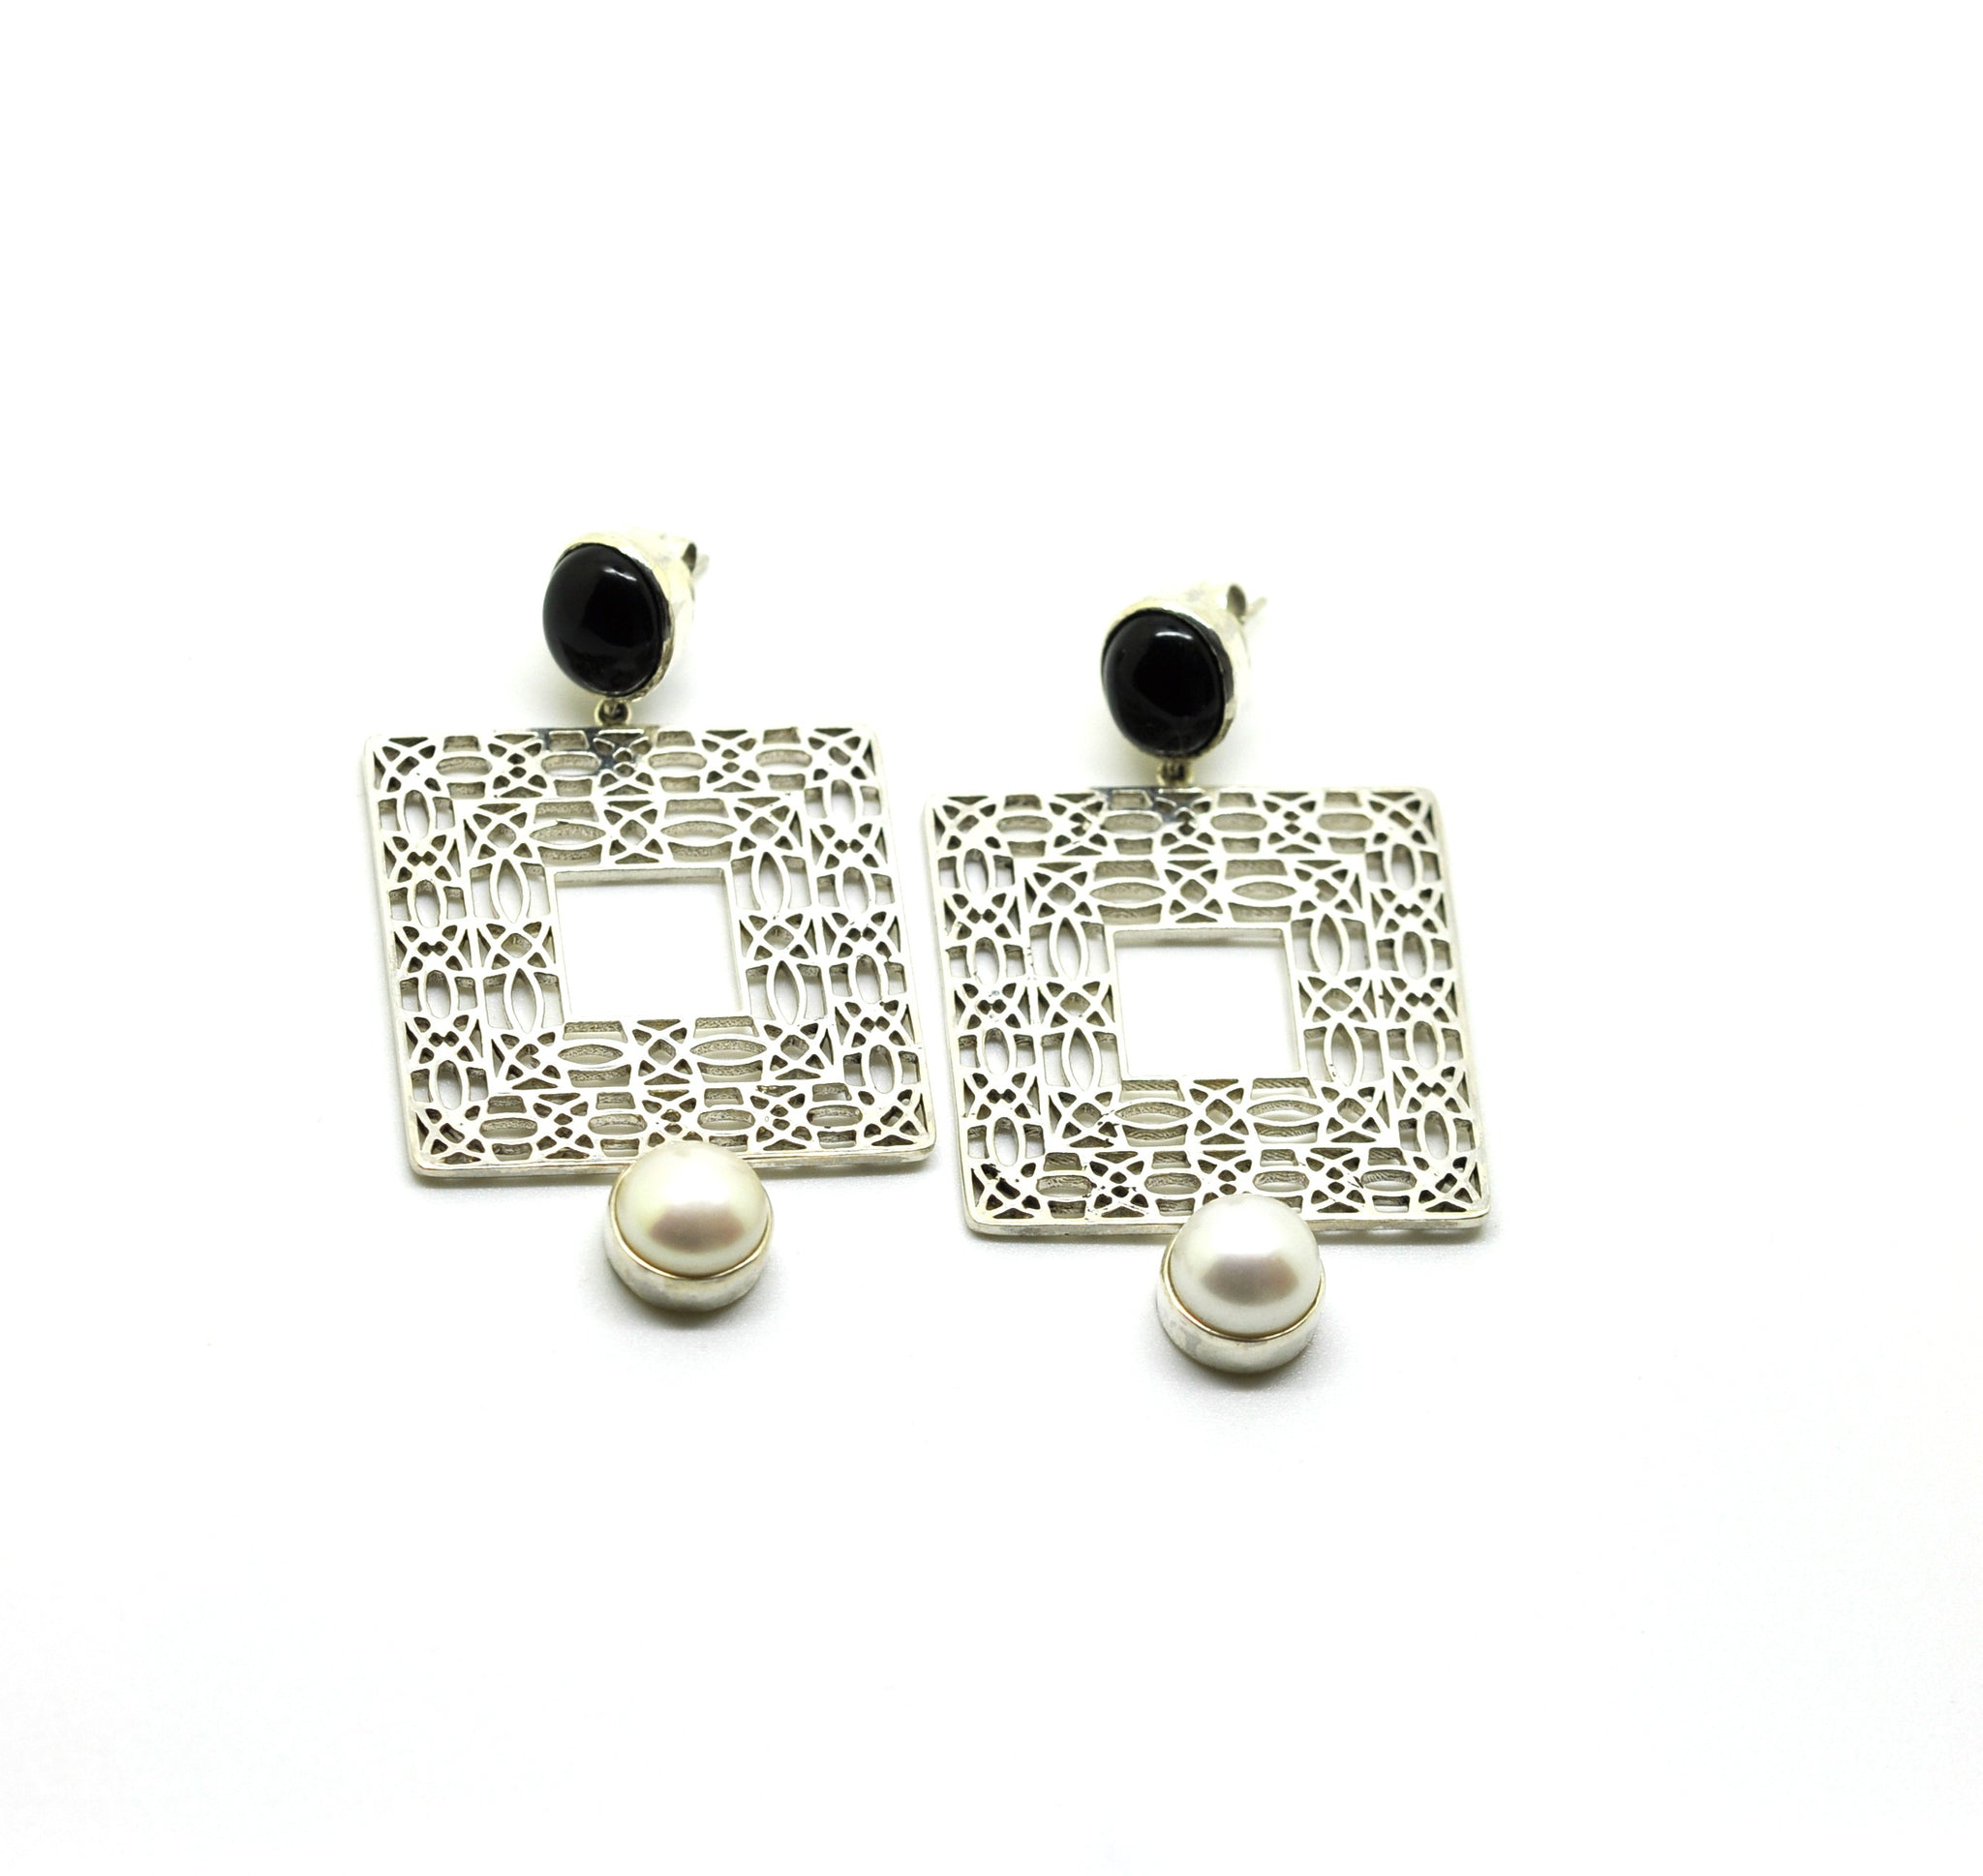 ON SALE Filigree - Square- Black onyx